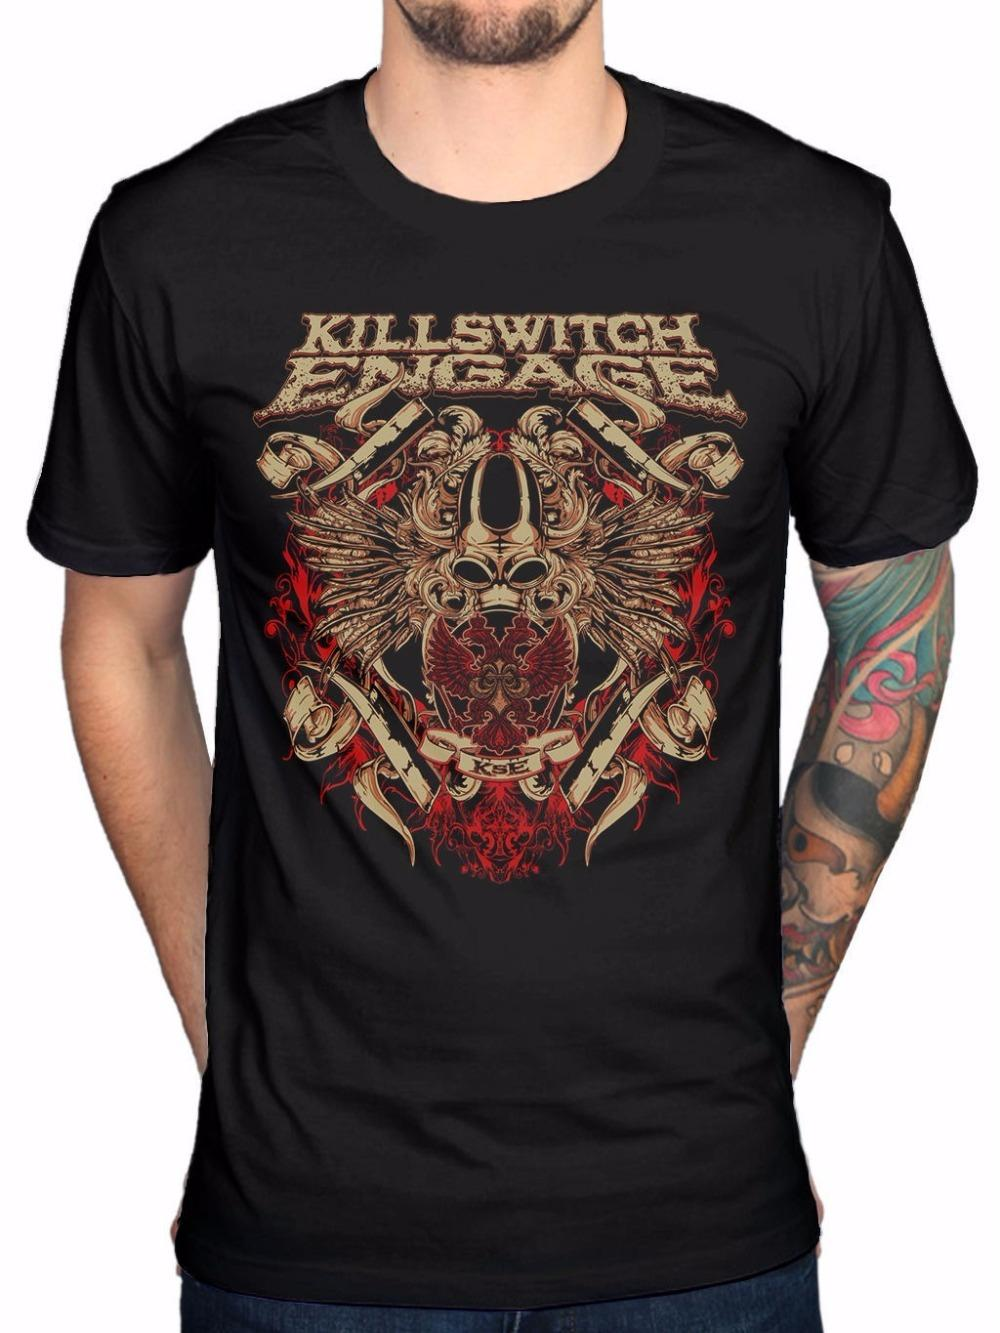 5559cacec Bulk T Shirts Crew Neck Short Sleeve Zomer Mens Killswitch Engage Biowar  Fashion Graphic Cotton Adult Men T Shirt T Shirts T Shirt 1 1 T Shirt From  ...